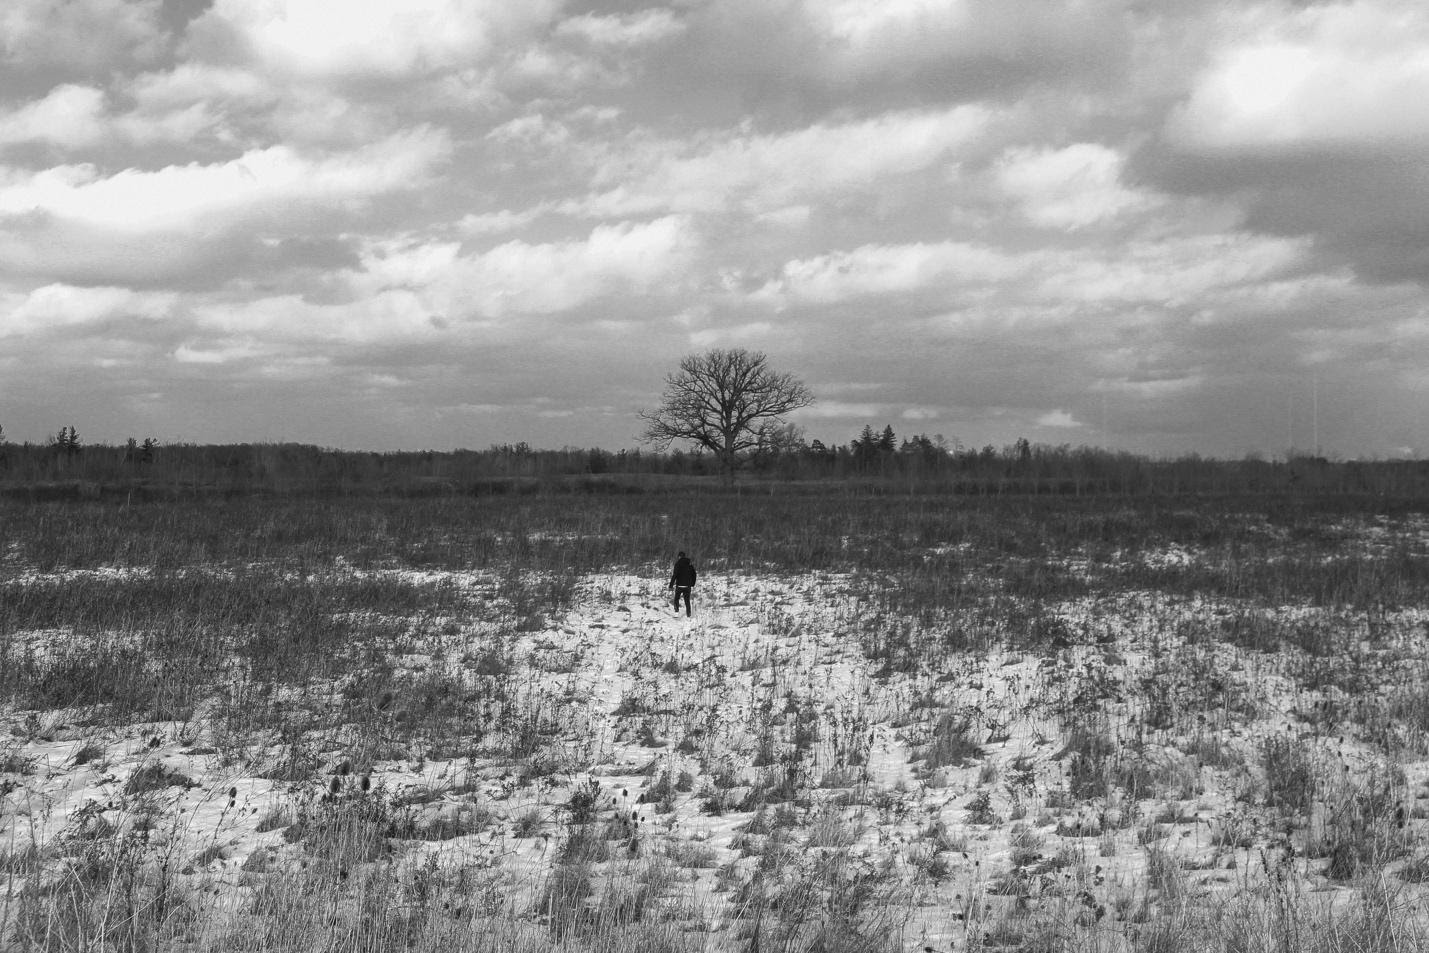 """""""High on Life"""" - 06: Man Walking in Open Field. Extreme Long Shot (Bordwell and Thompson, 189-190)"""